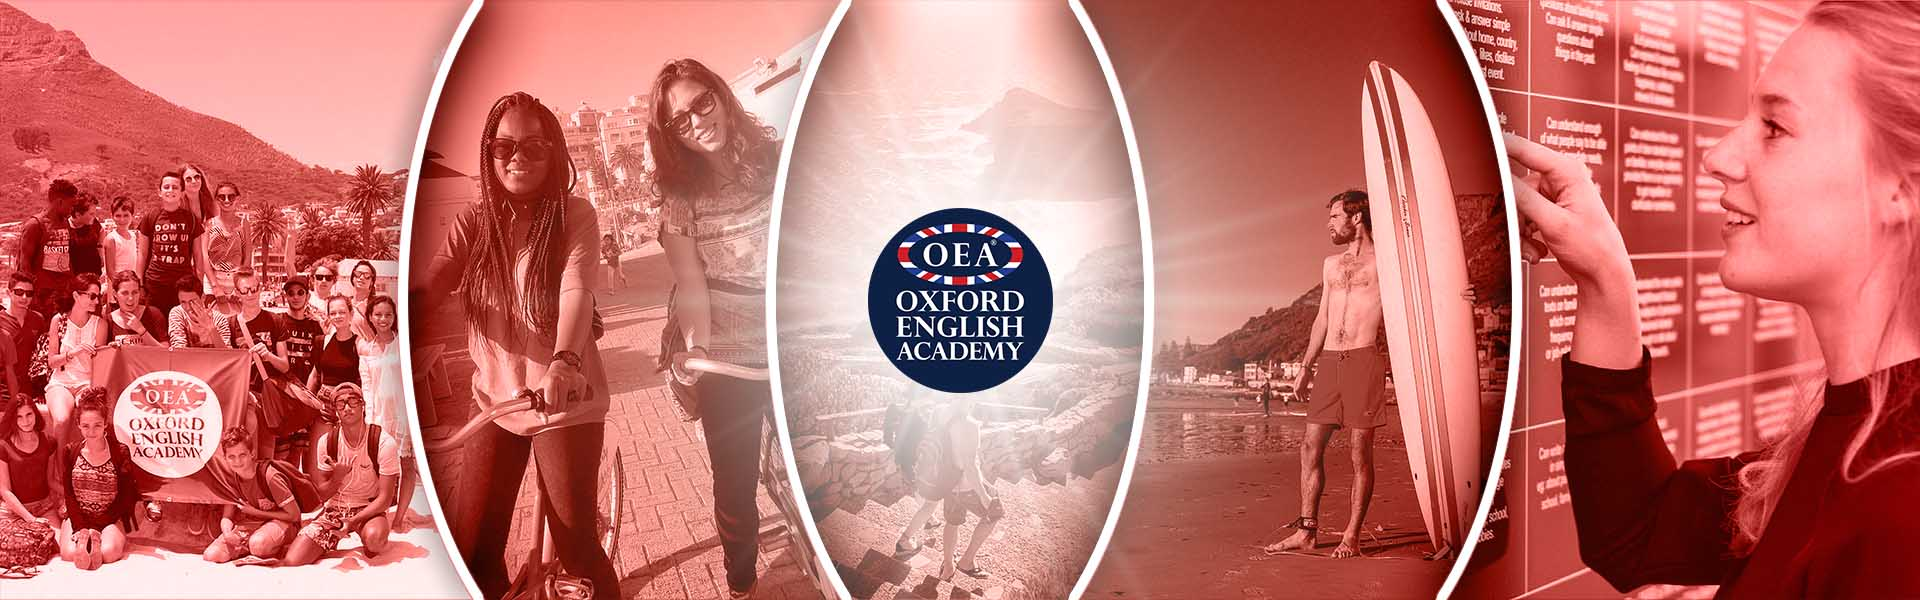 Oxford English Academy Cape Town Dil Okulu